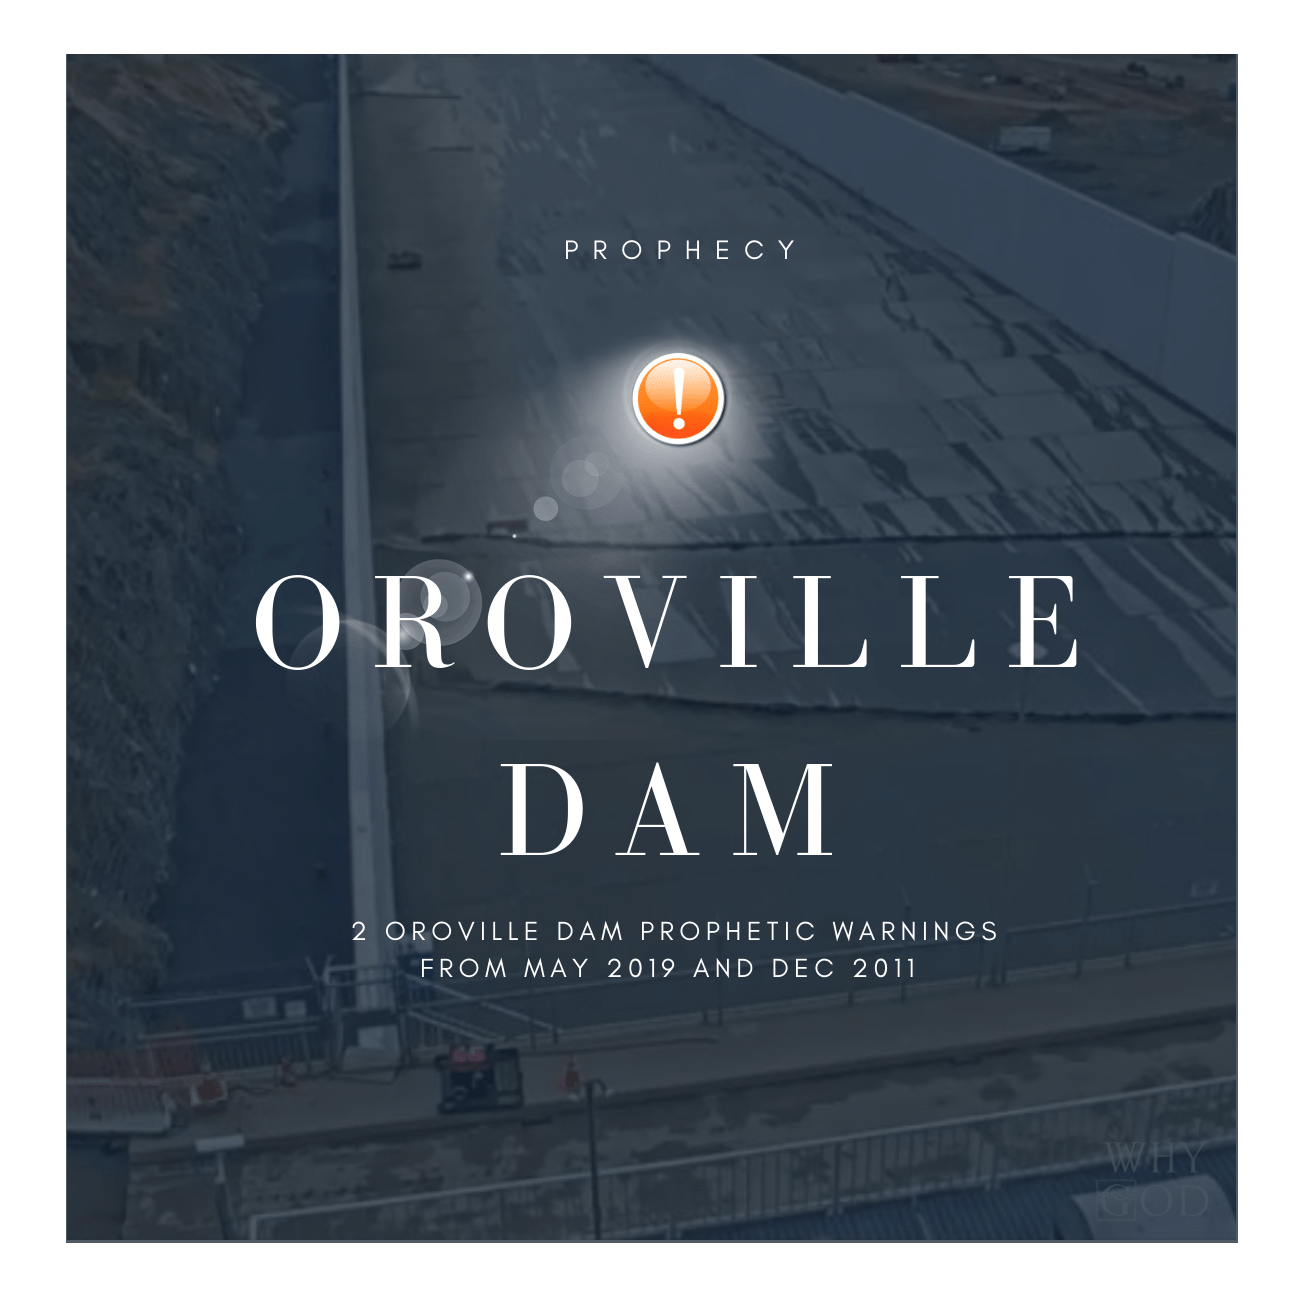 3 Oroville Dam Prophetic Warnings, 2019, 2011 And Bible Codes